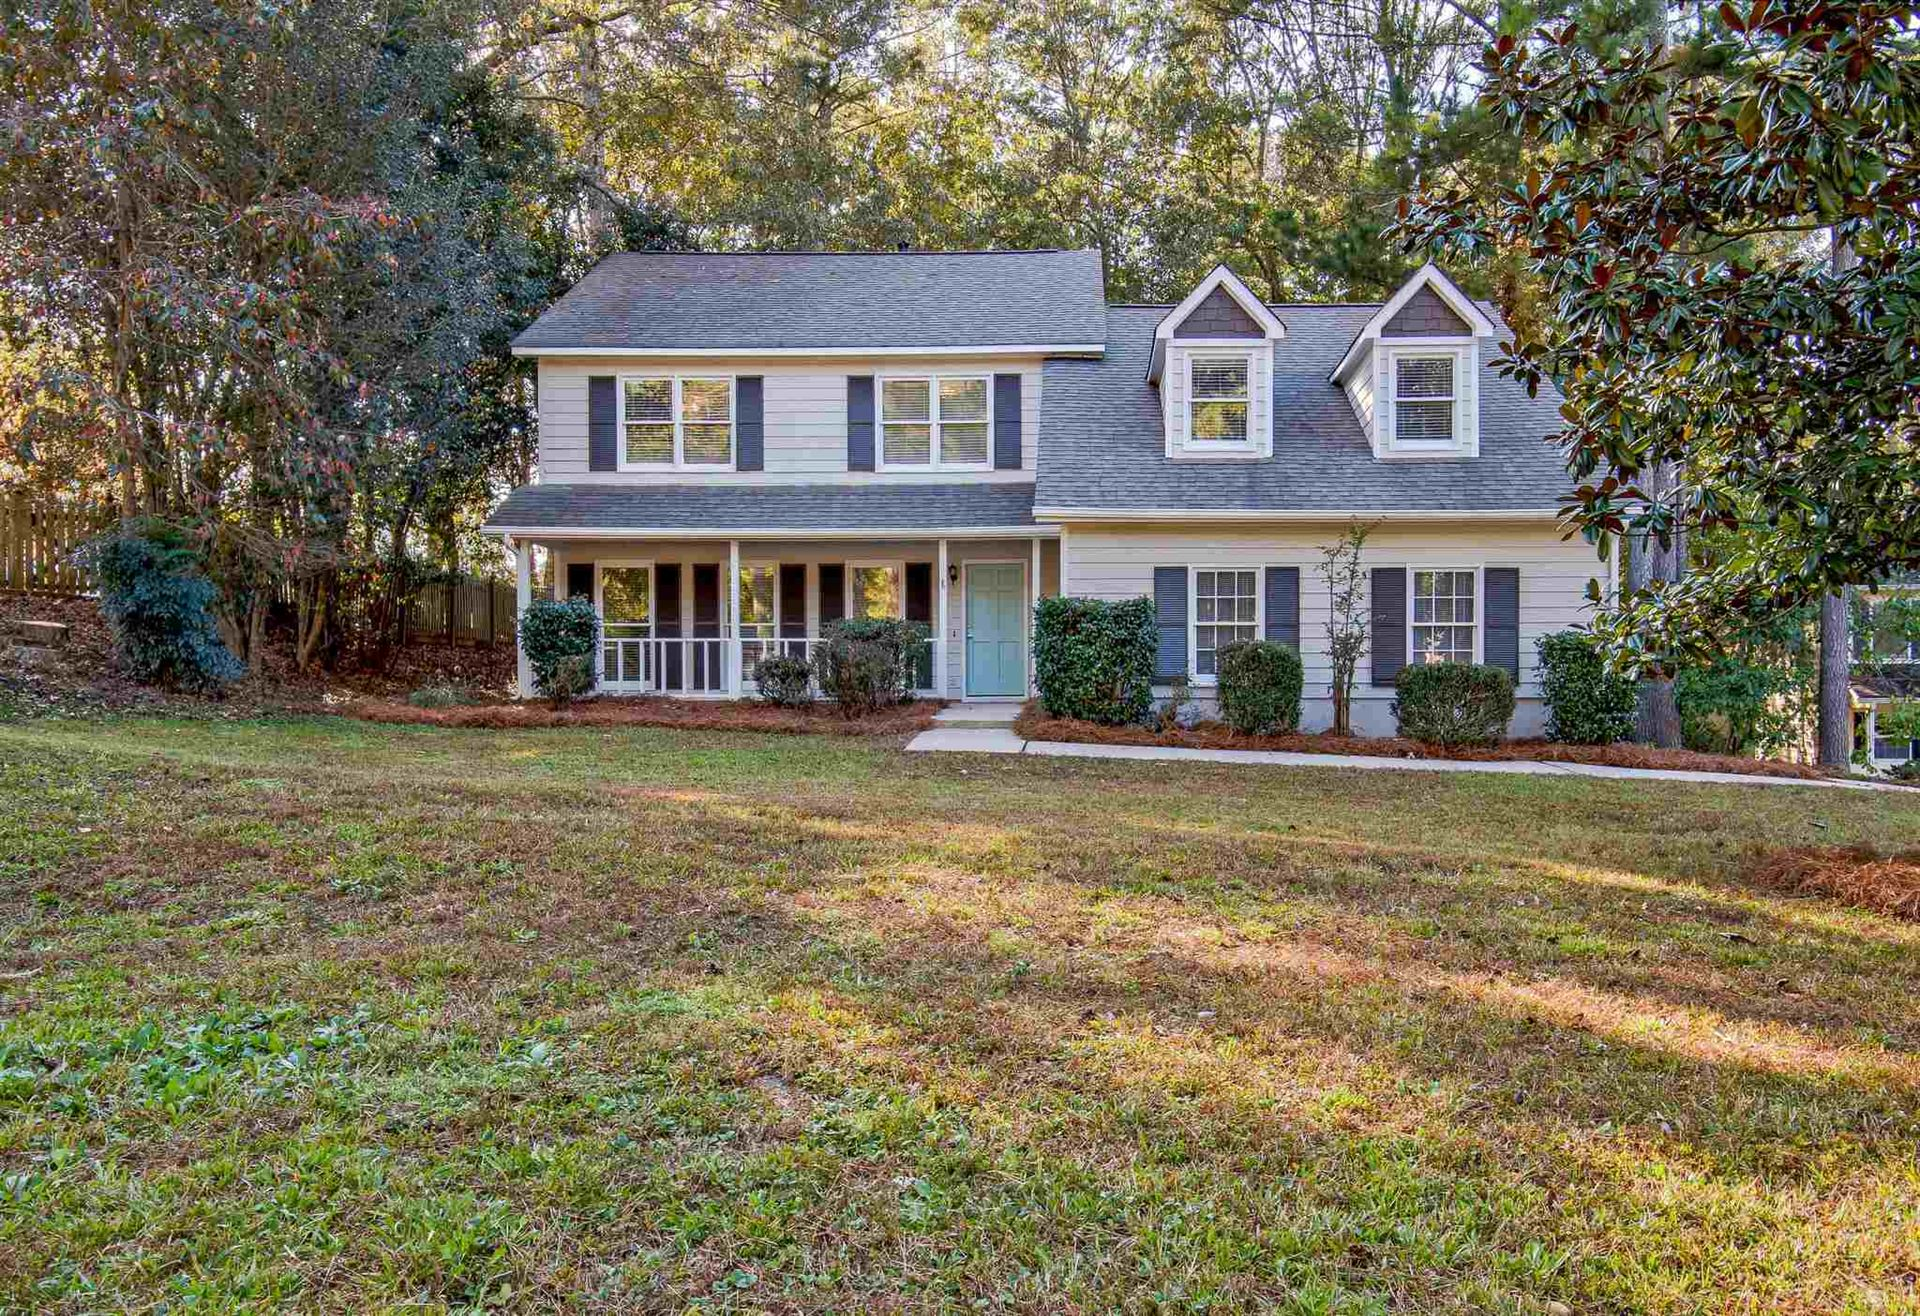 503 Caxton Ct, Peachtree City, GA 30269 - #: 8884918